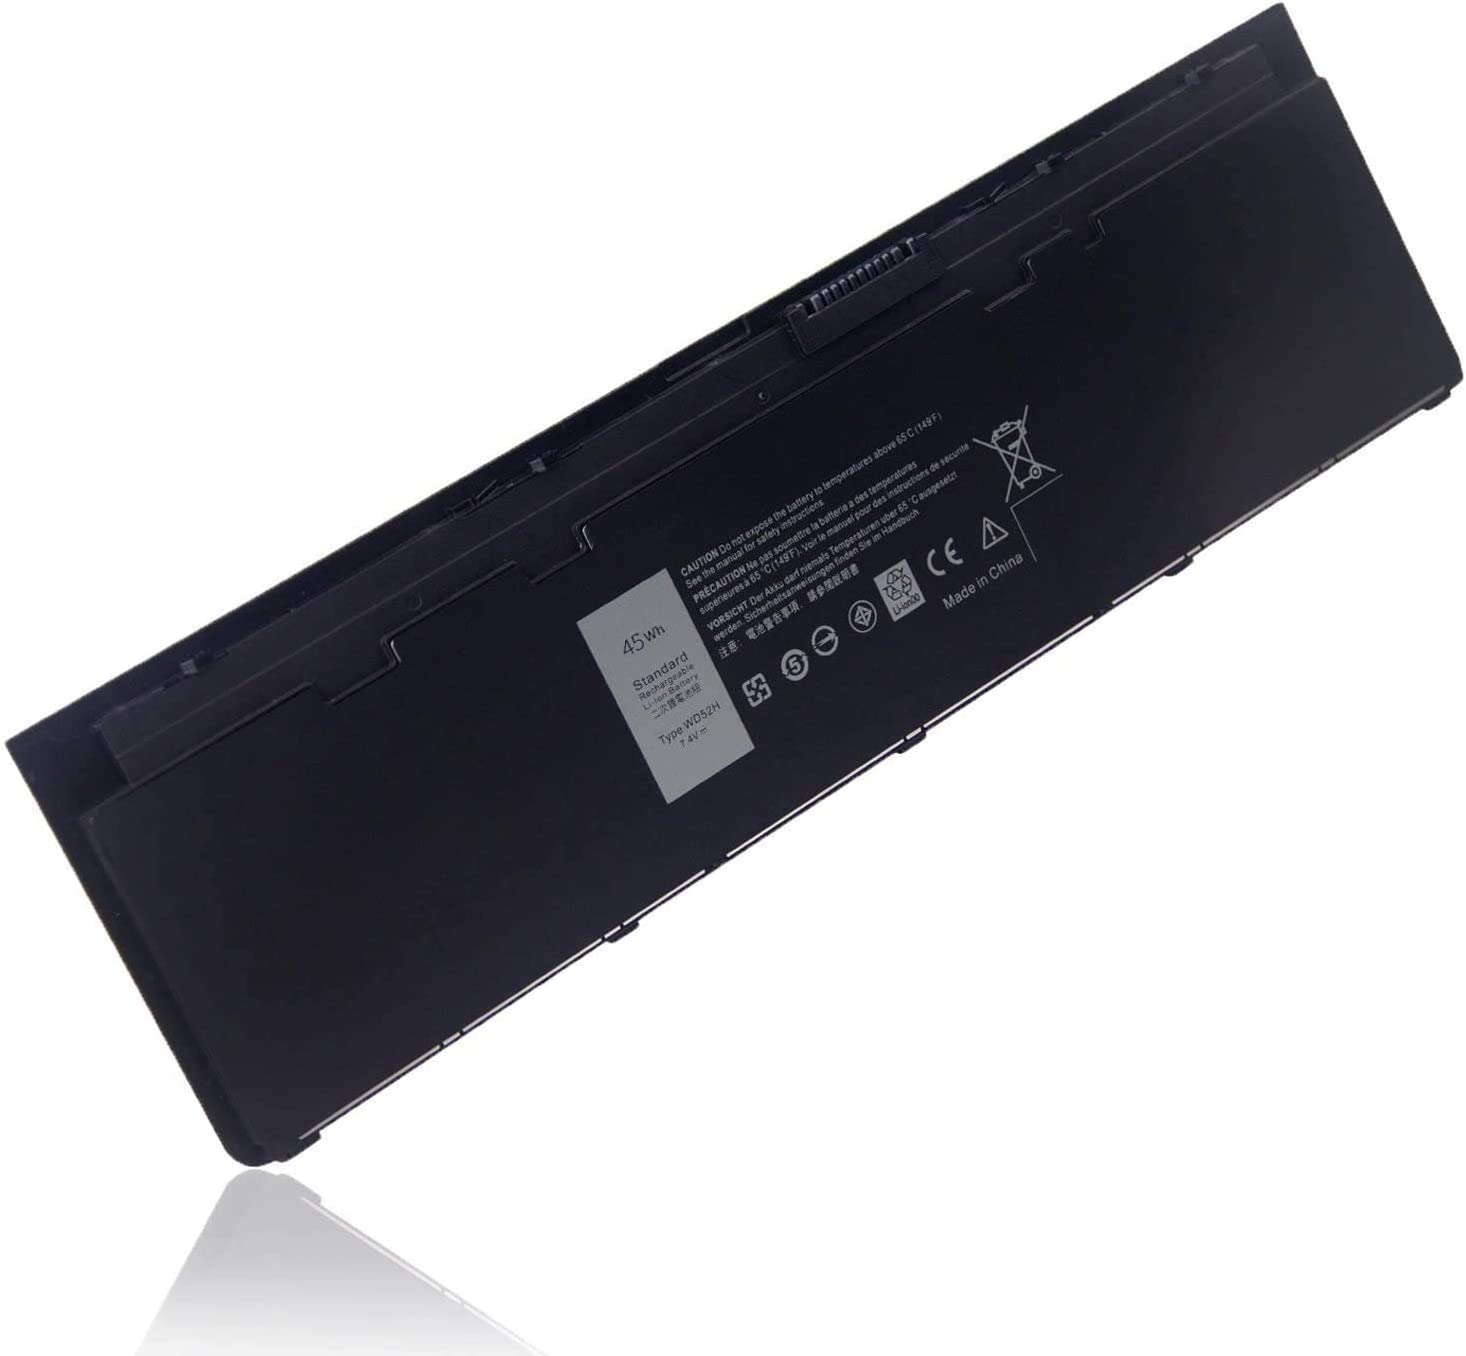 Binger New WD52H Replacement Laptop Battery Compatible with Dell Latitude E7240 KWFFN J31N7 GVD76 HJ8KP 451-BBFW 451-BBFX NCVF0 T440P (7.4V 45wh)